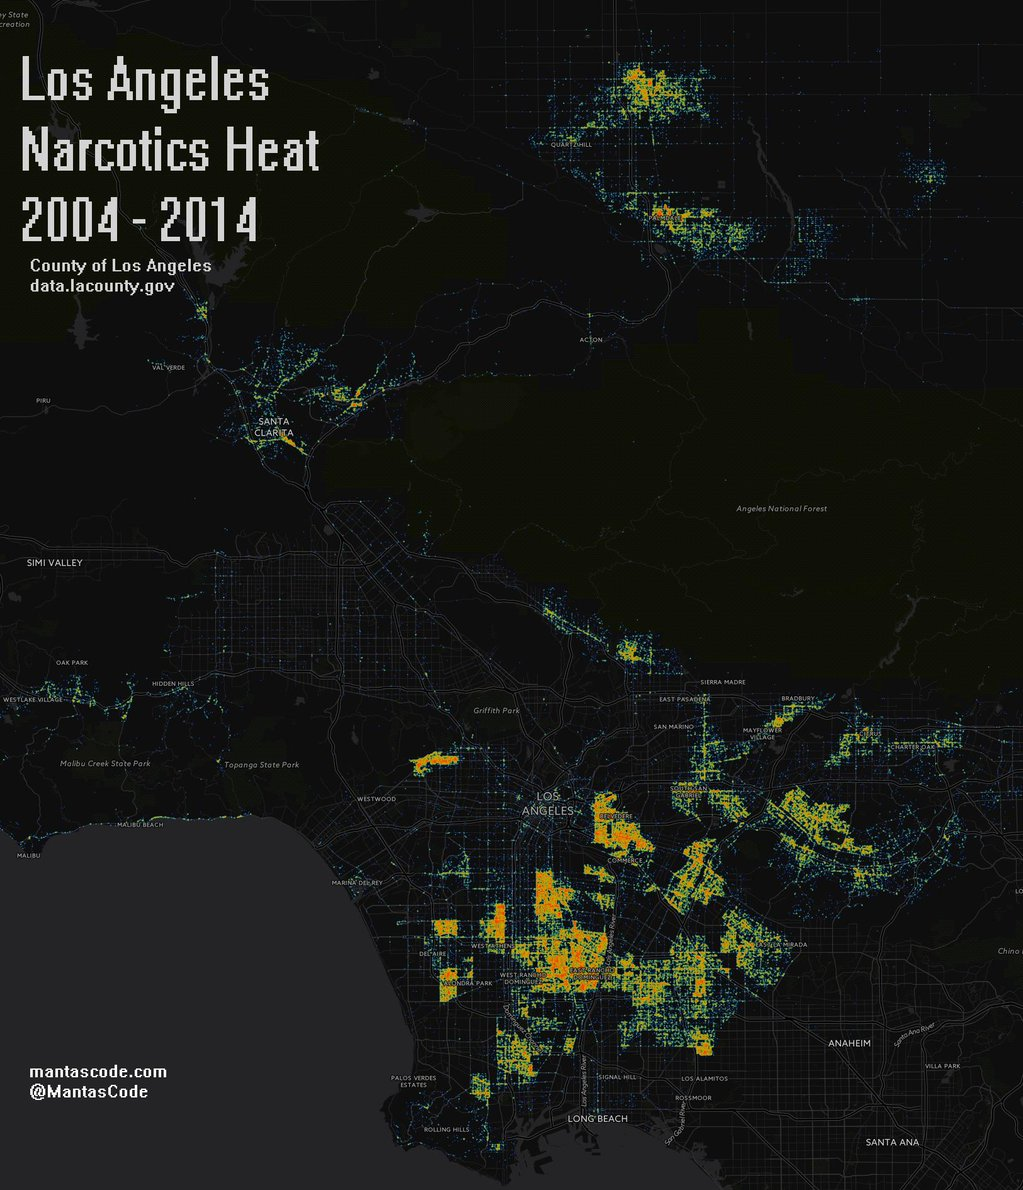 Los Angeles narcotics heat (2004 - 2014)